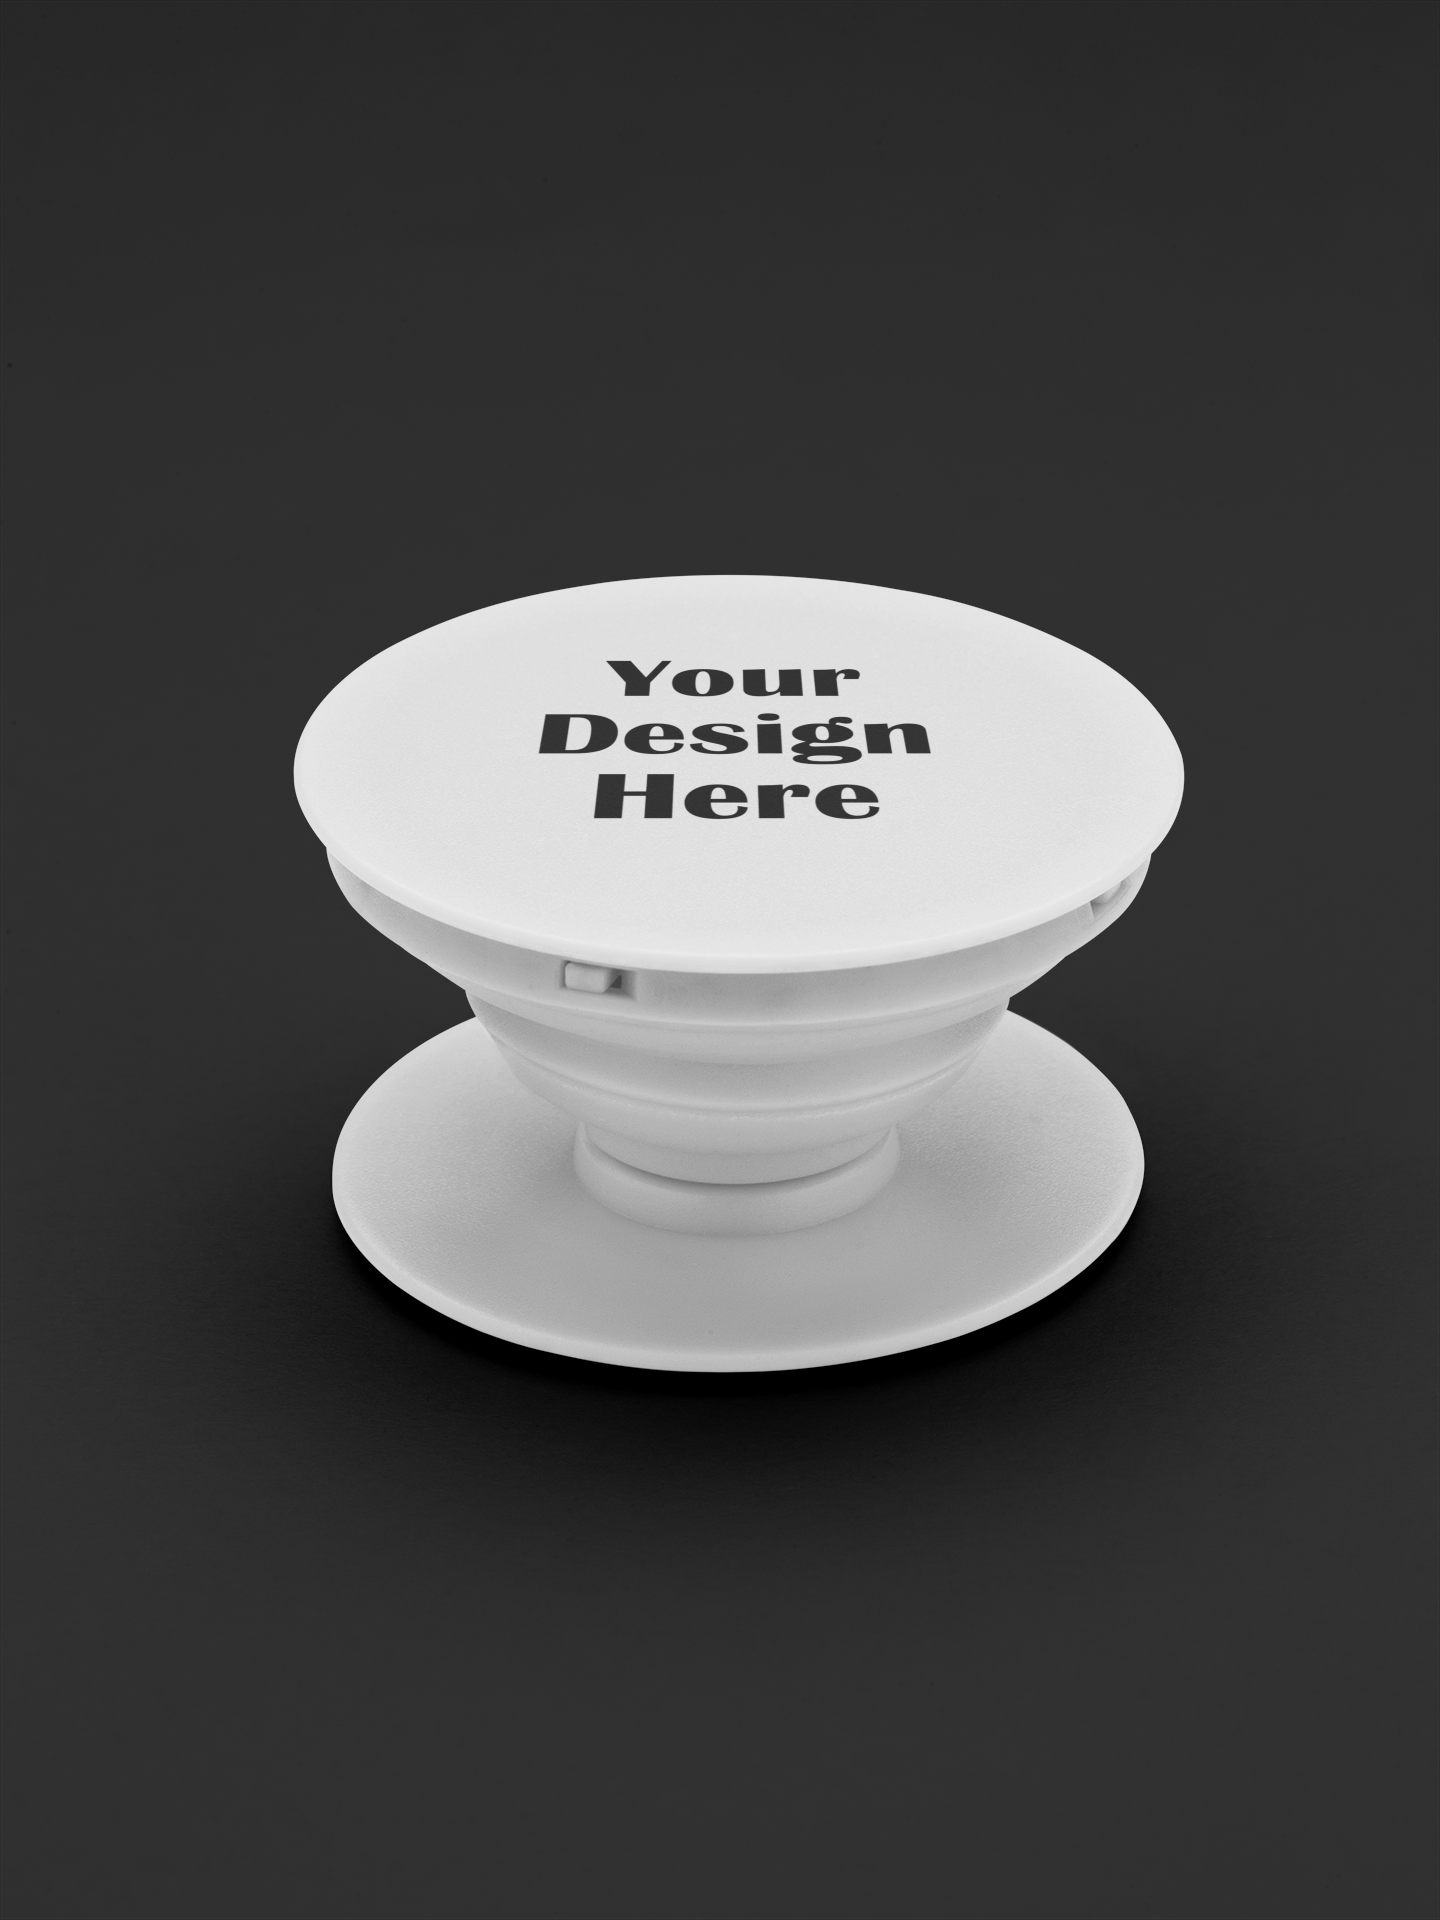 TFM-TH-2020-0000-Pgr-Wht-1.png